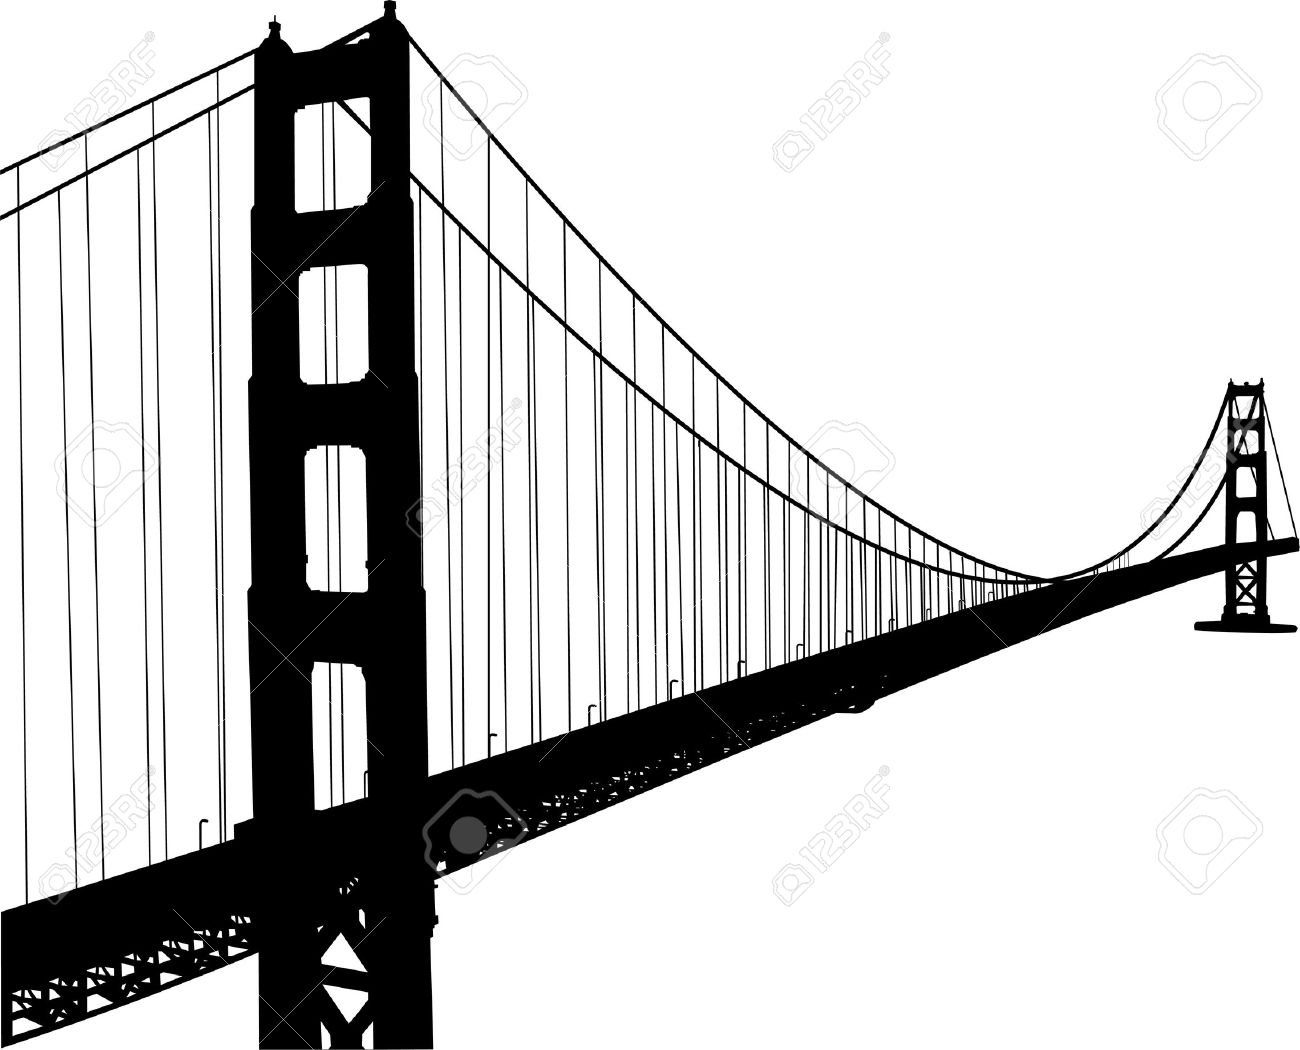 silhouette of golden gate bridge royalty free cliparts vectors and rh 123rf com golden gate bridge skyline vector golden gate bridge silhouette vector